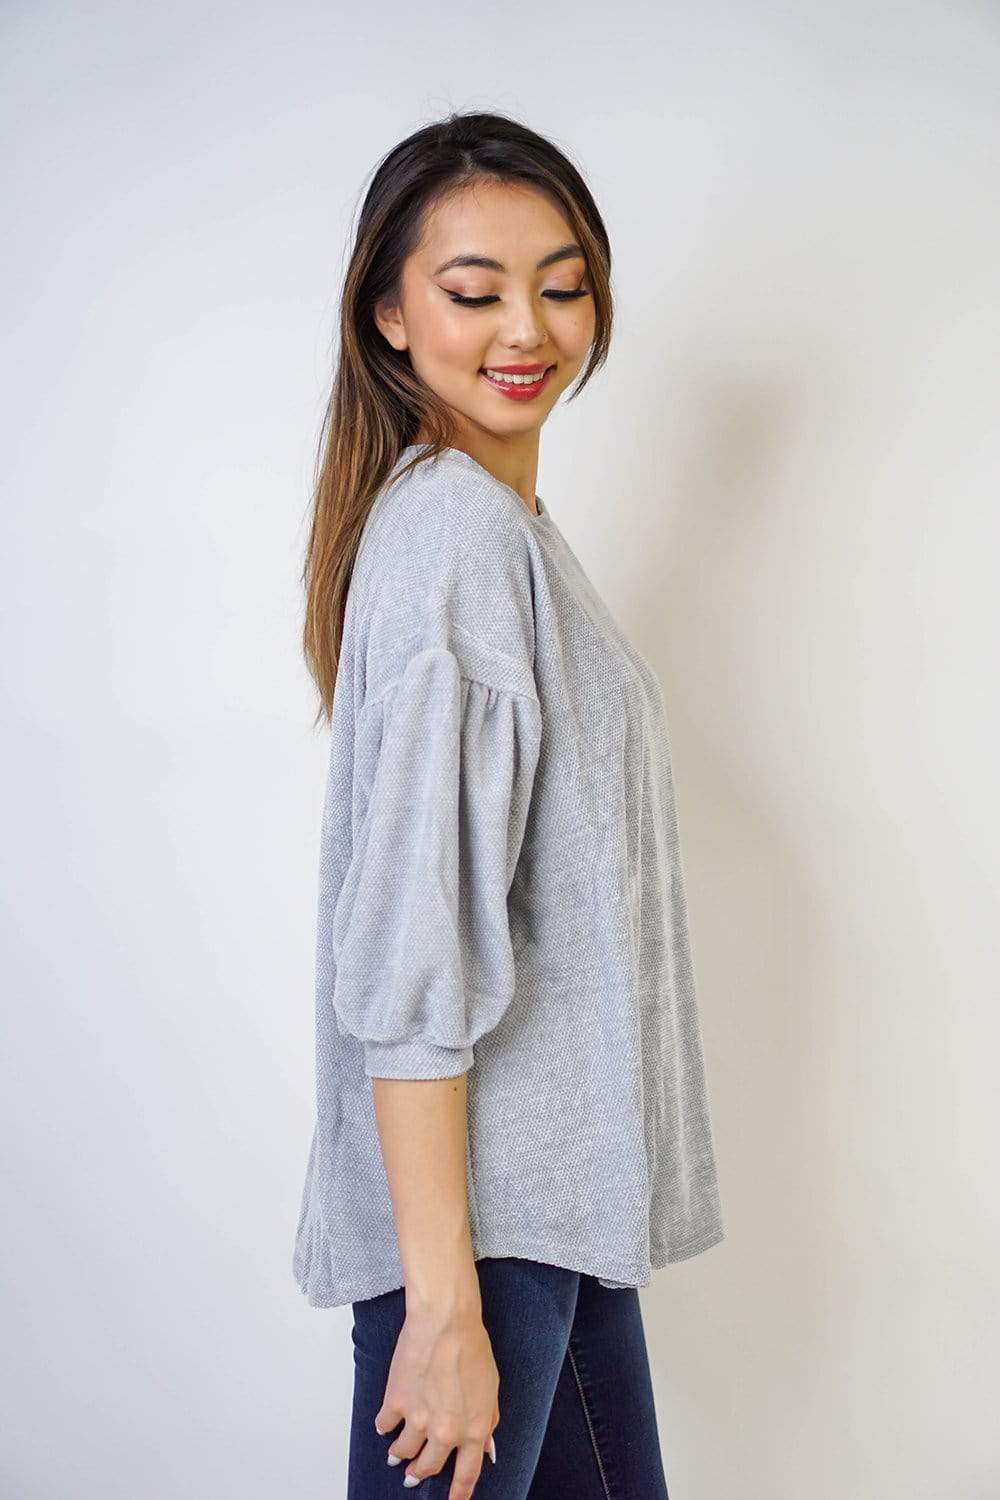 TOP Silver Soft Chenille Balloon Sleeve Top - Chloe Dao